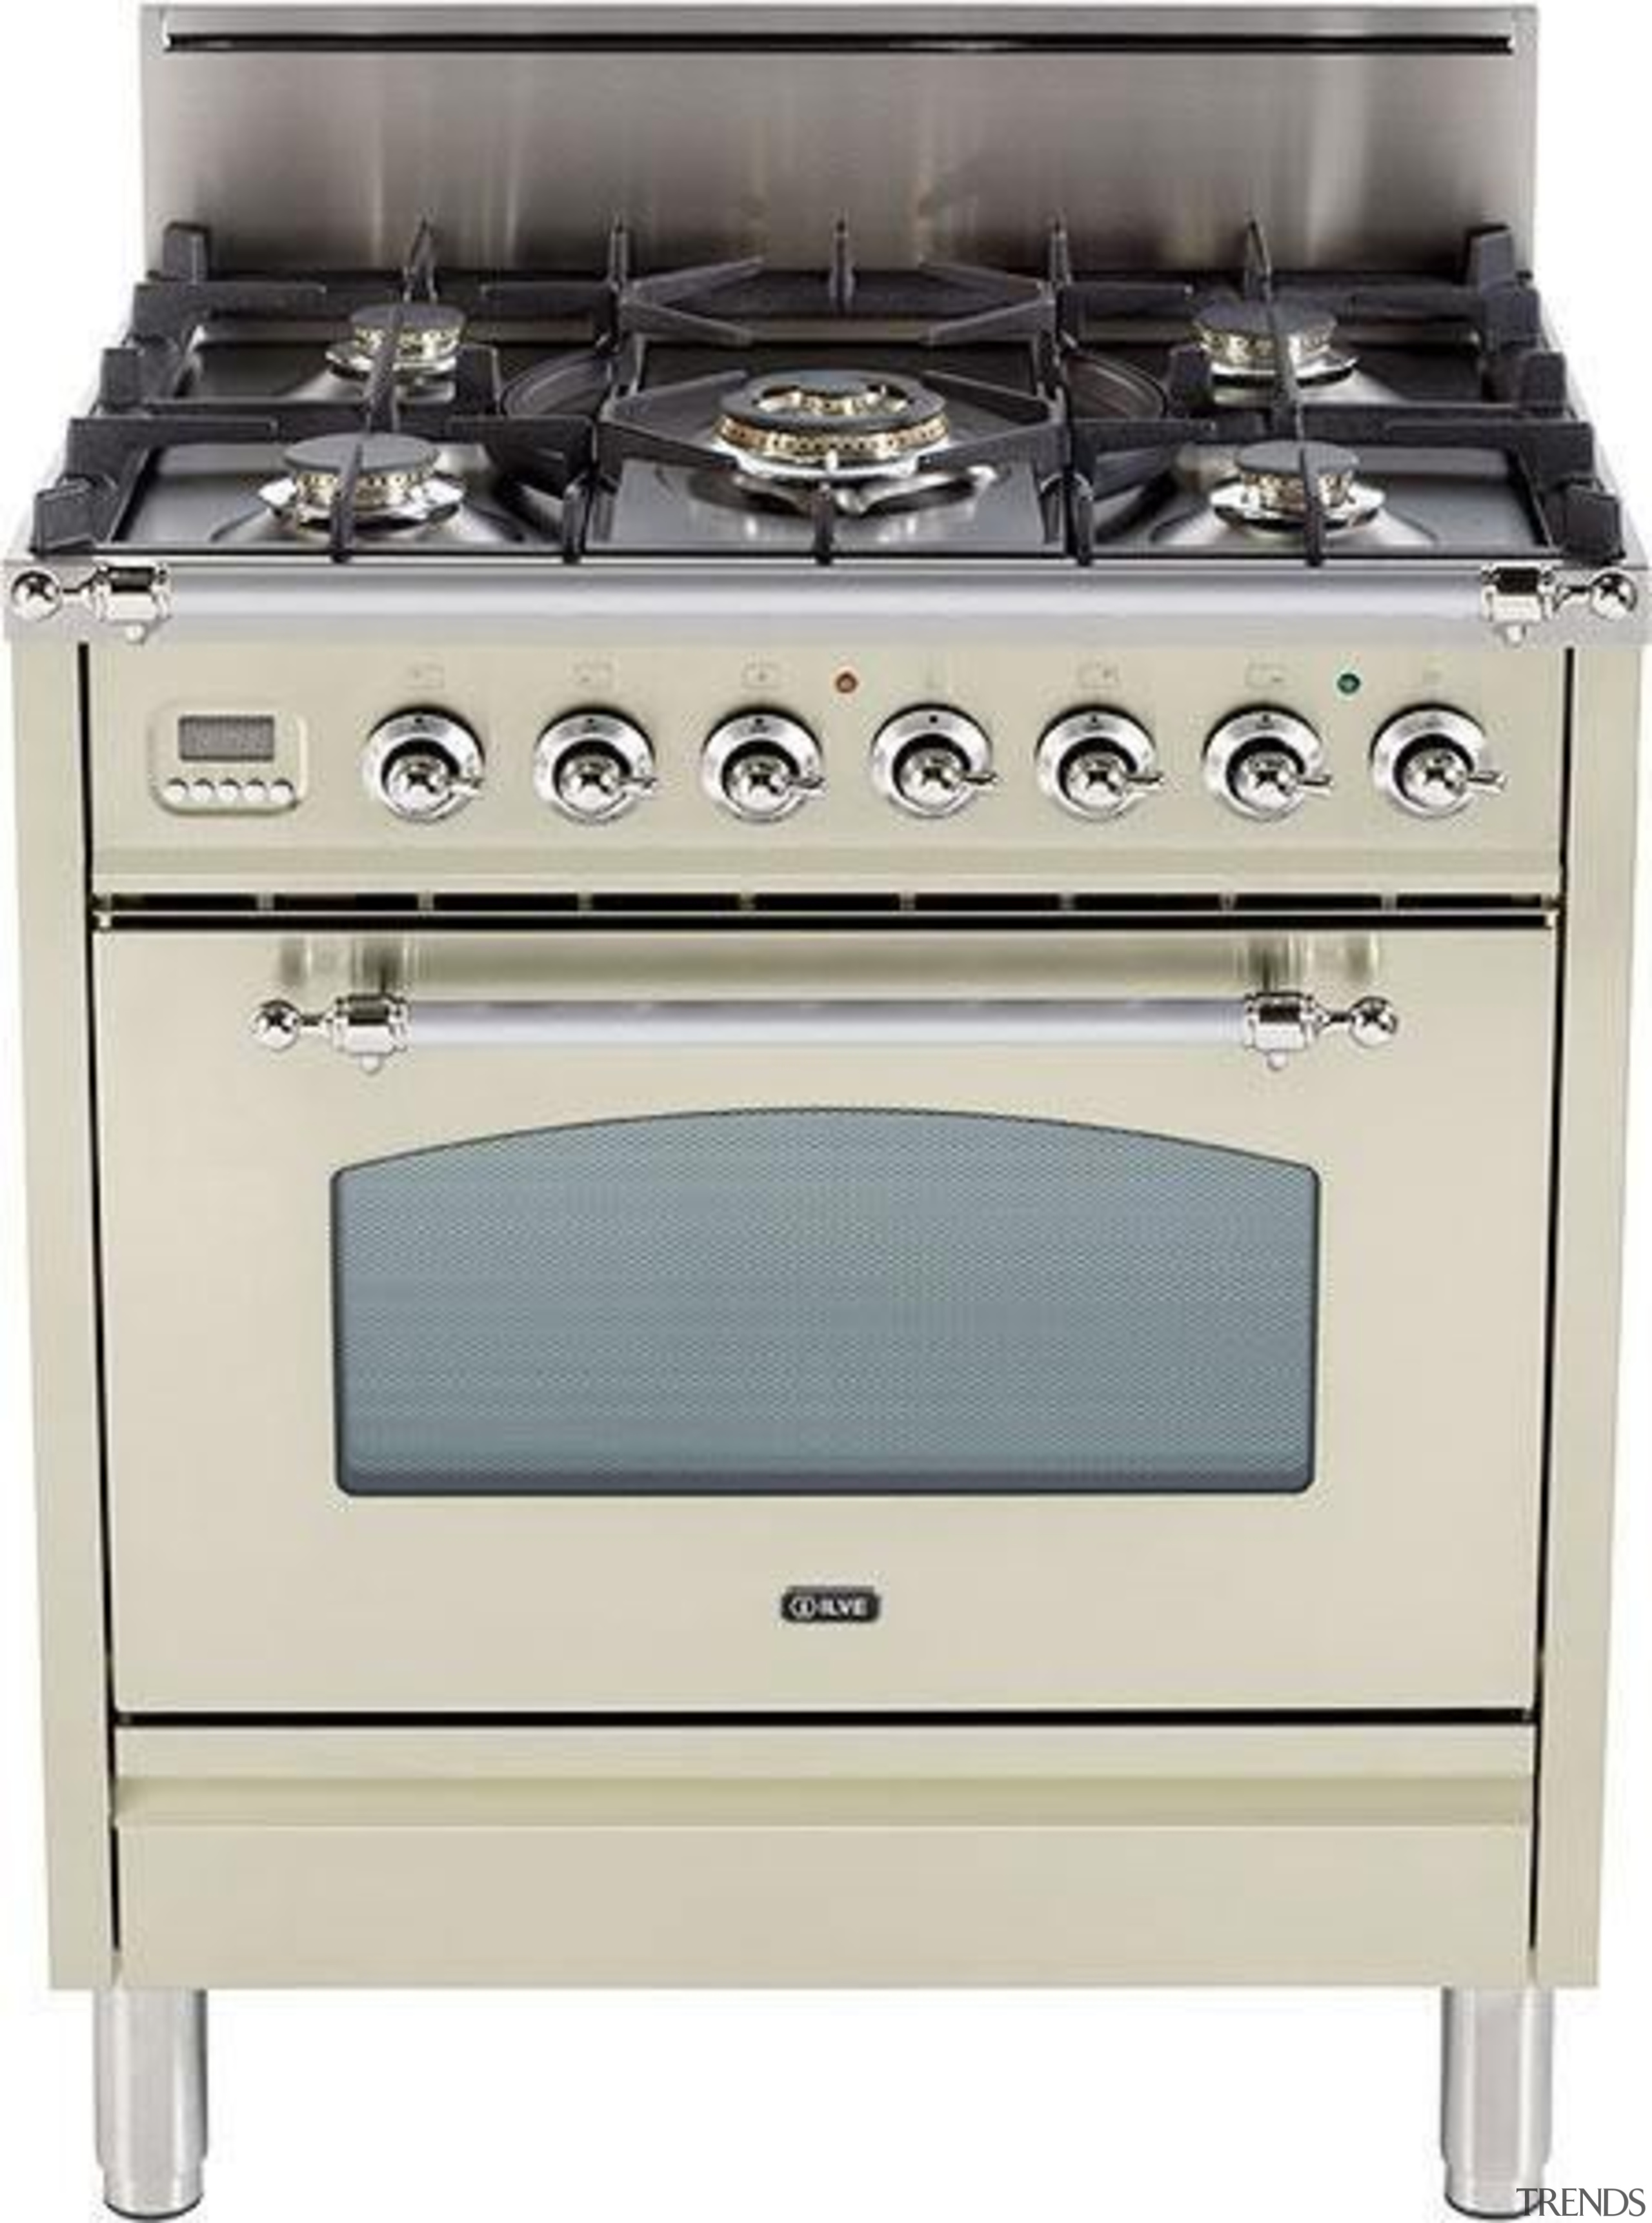 For more information, please visit www.eurochefusa.com gas stove, home appliance, kitchen appliance, kitchen stove, major appliance, product, white